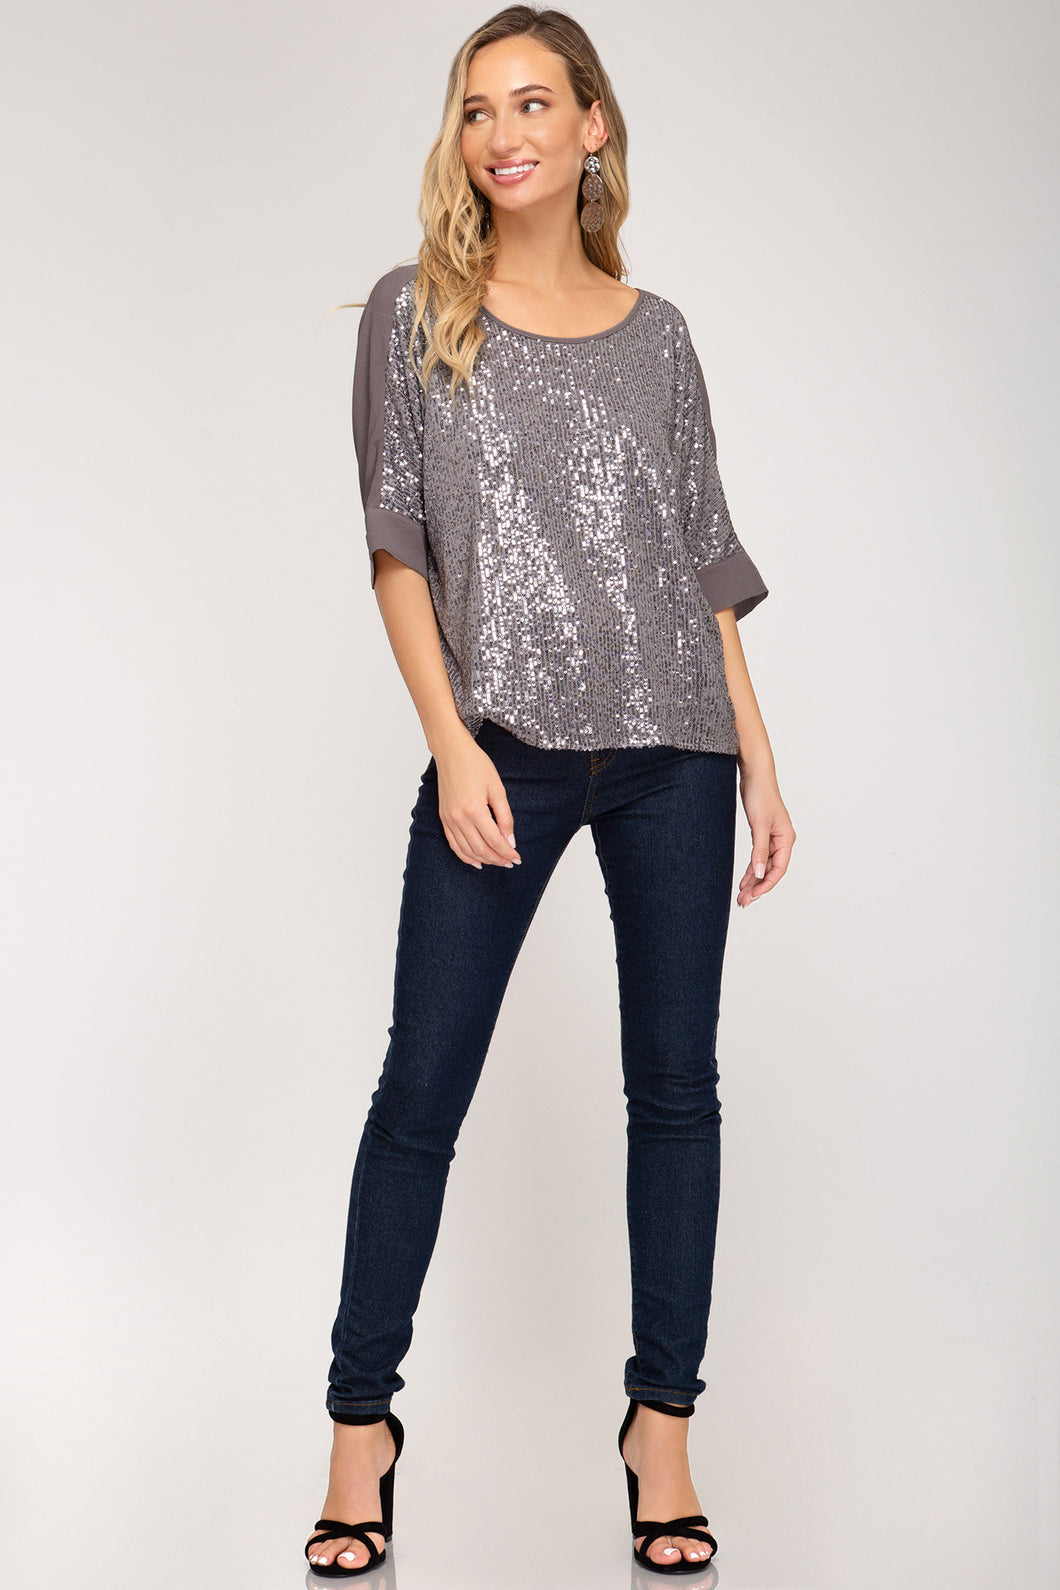 She + Sky - Batwing Sequin Top with Contrast Back